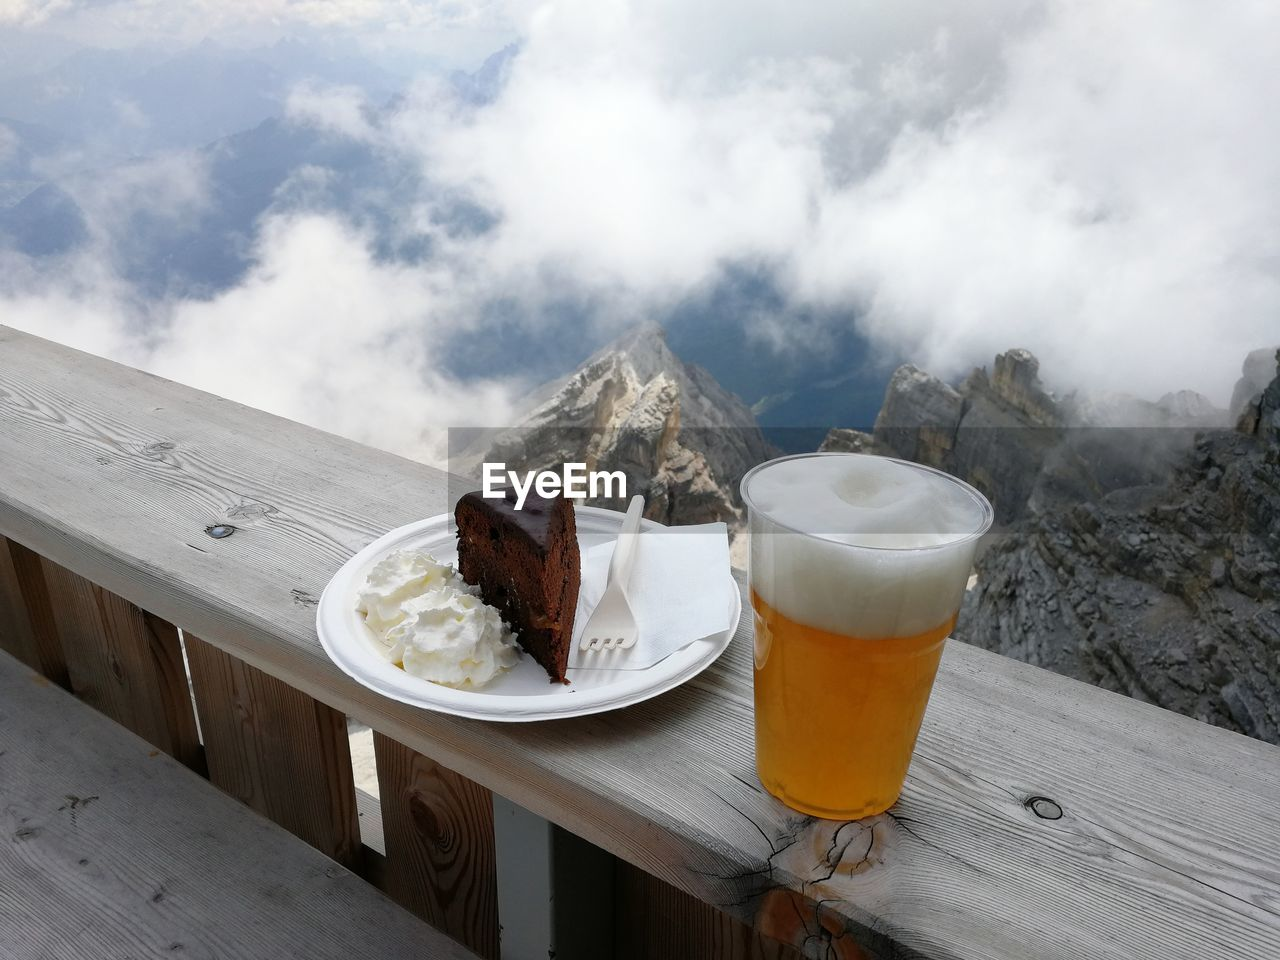 Cake and beer on table against mountains